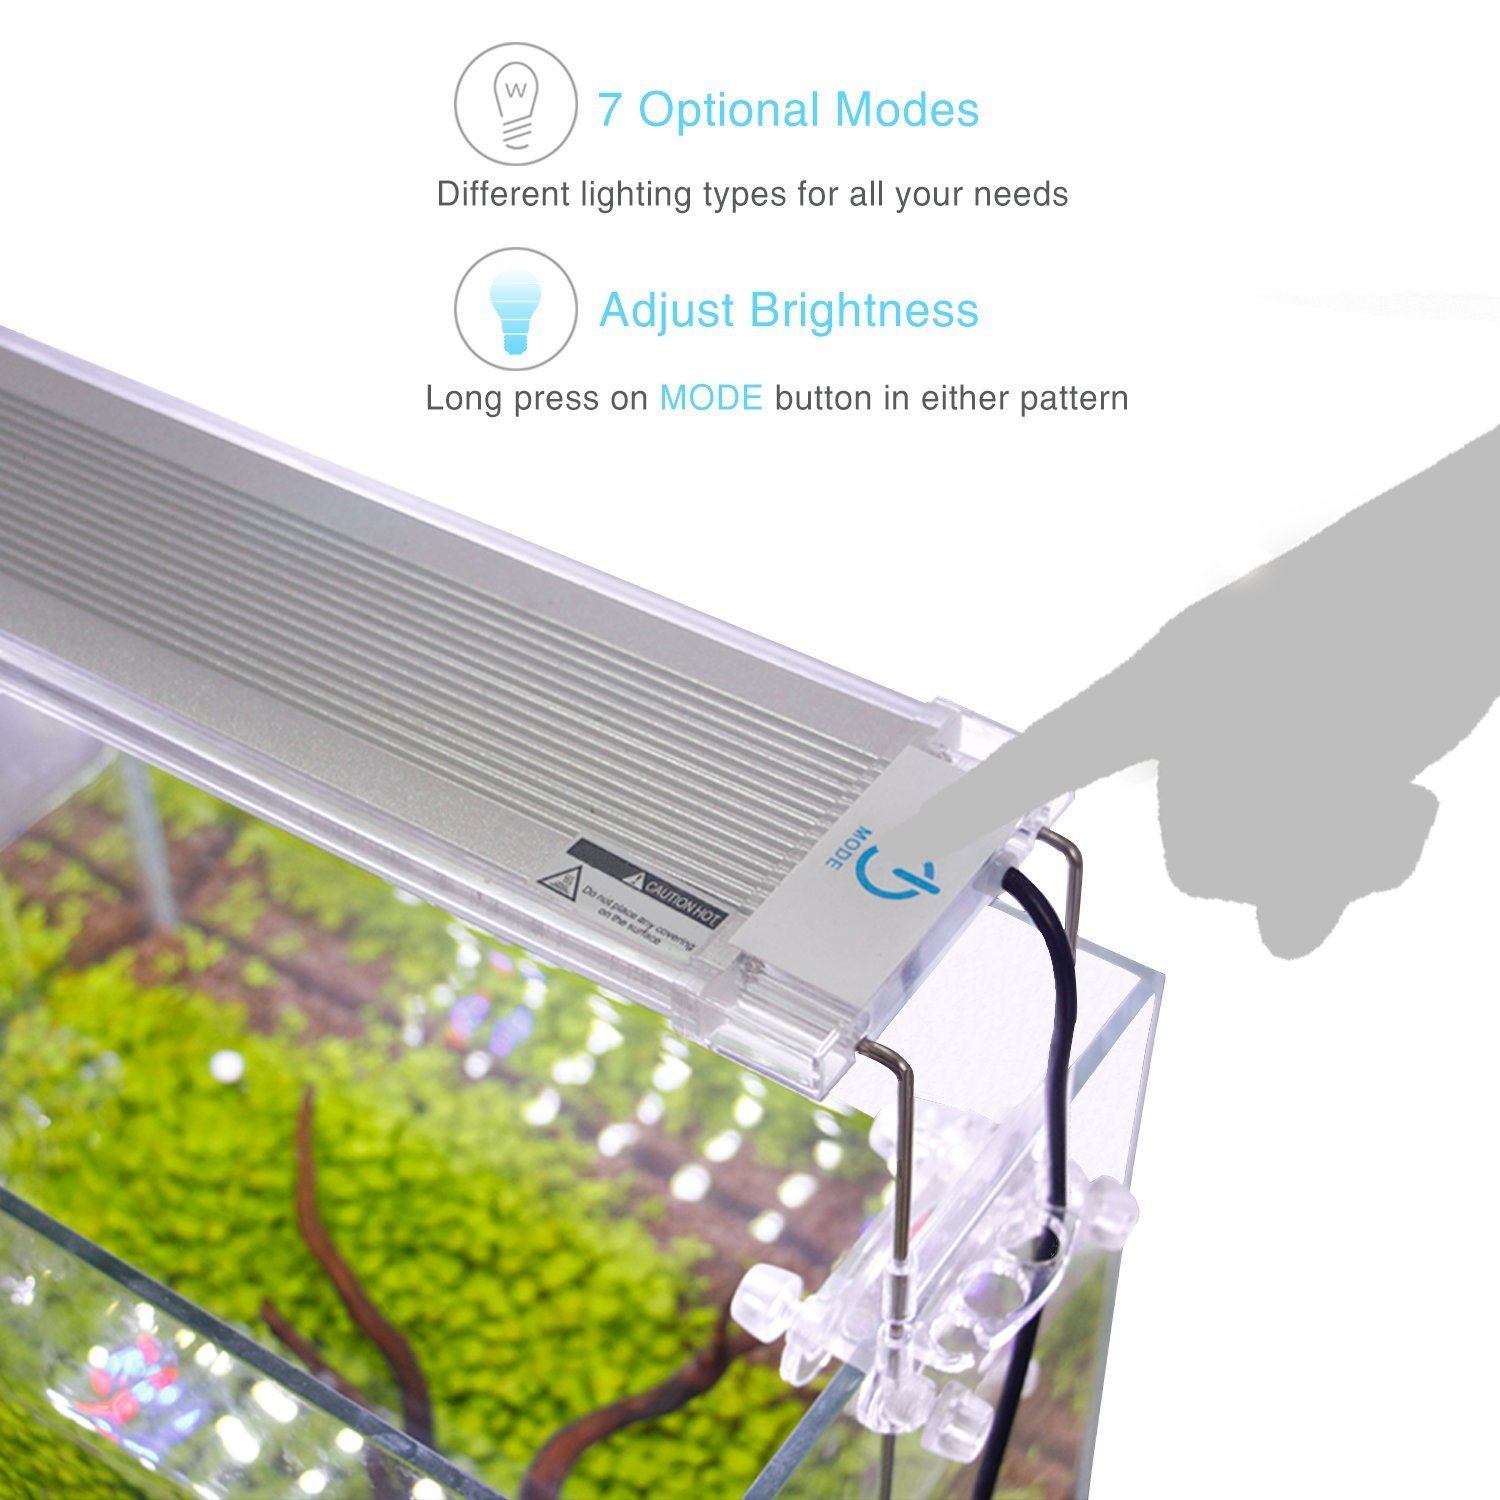 Size 36 to 48 Inch White and Blue LEDs Dimmable Fish Tank Light with 2-Channel Controller High Light Output NICREW ClassicLED G2 Aquarium Light 32 Watts